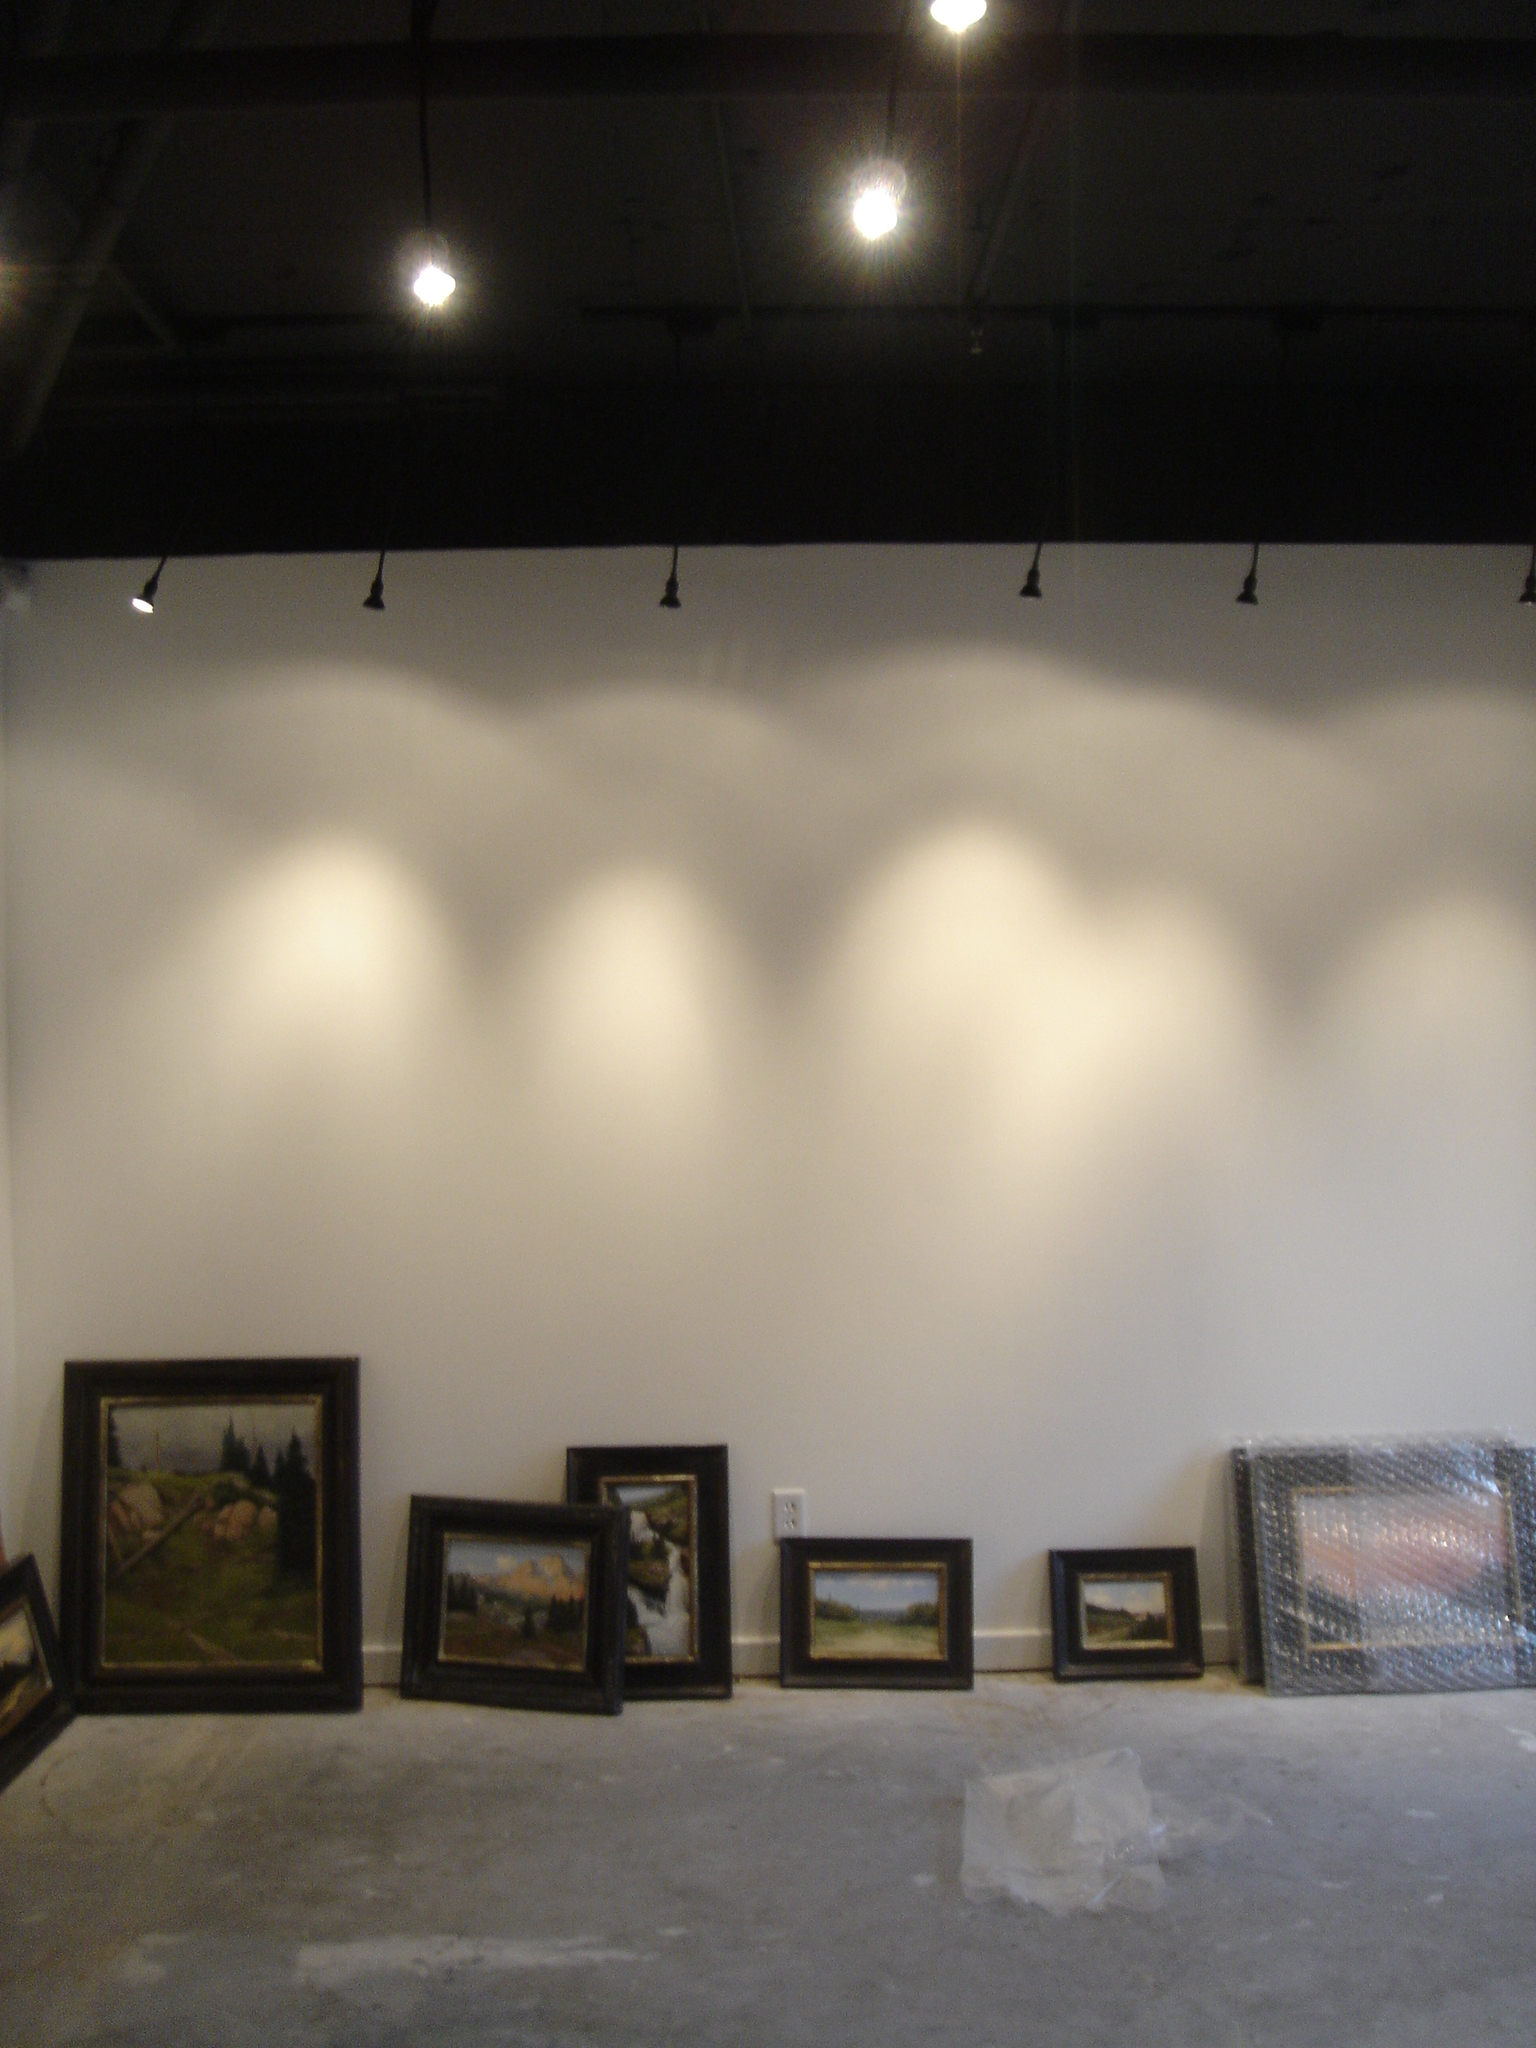 Gallery MAR Celebrates Seven Years